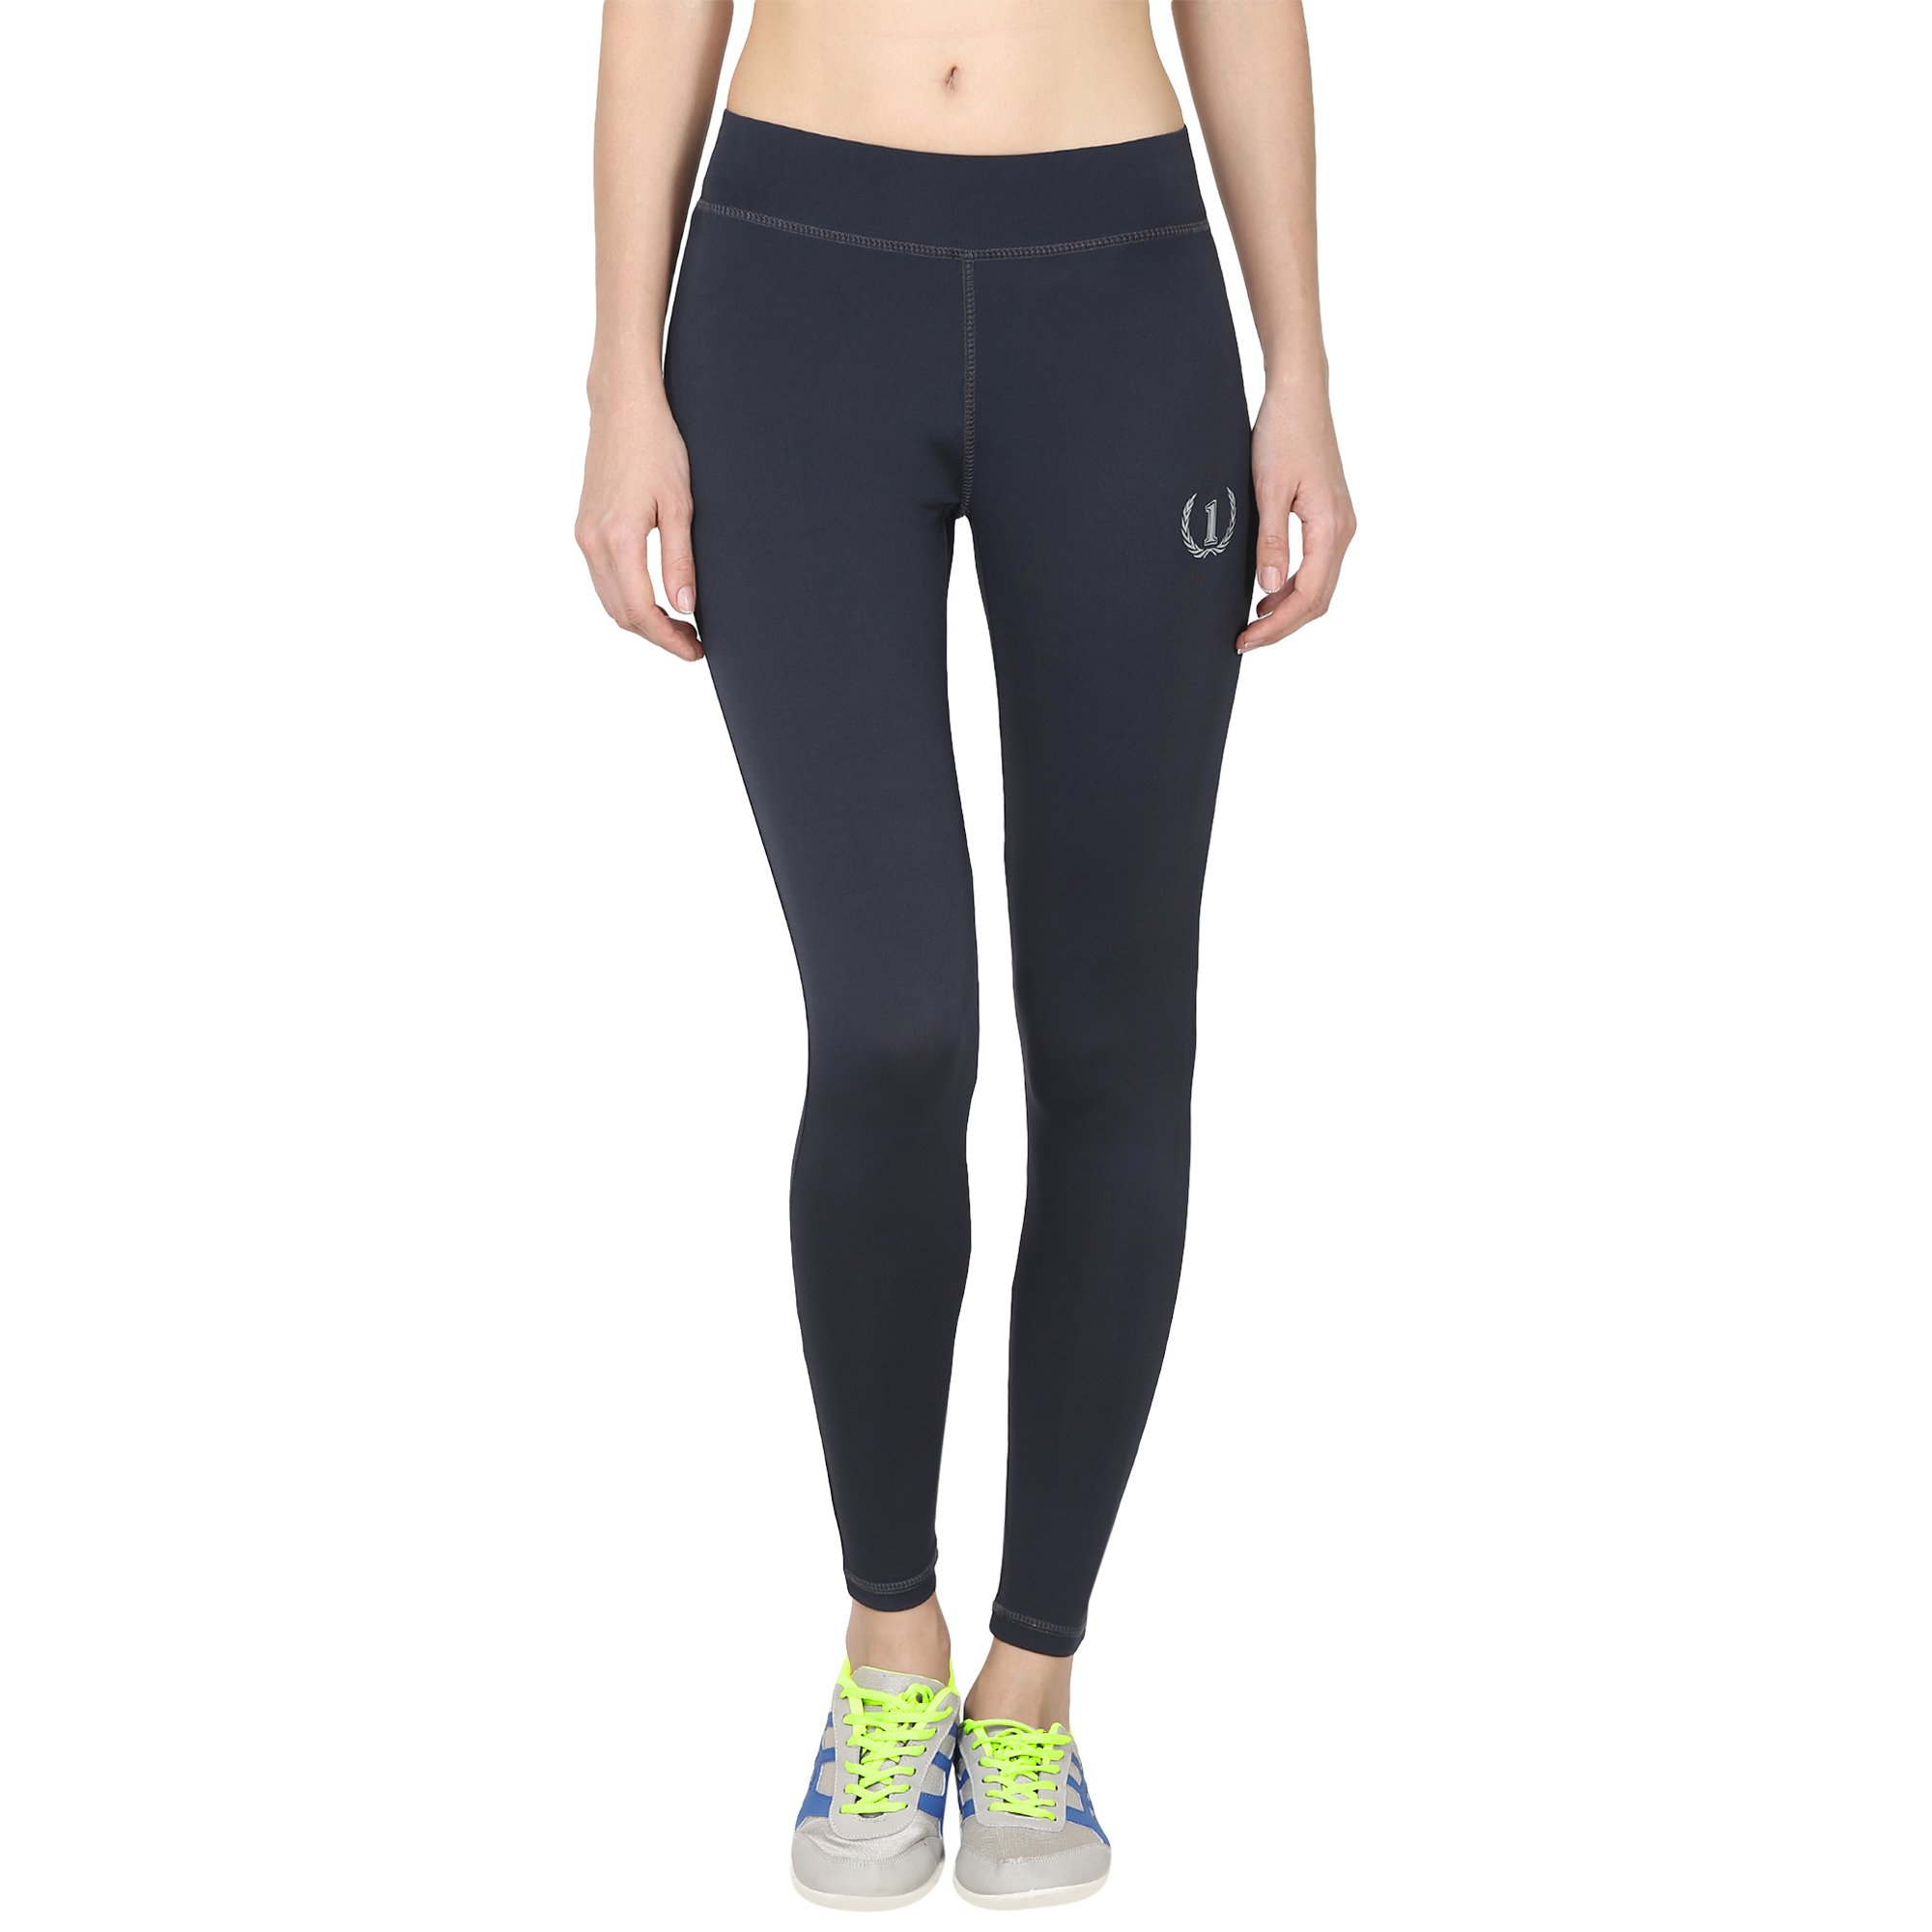 8dd7358b19f03 ONESPORT Dark Grey Solid Slim Fit Ankle Length Sports Tights for  Women(ONSP40DG) product